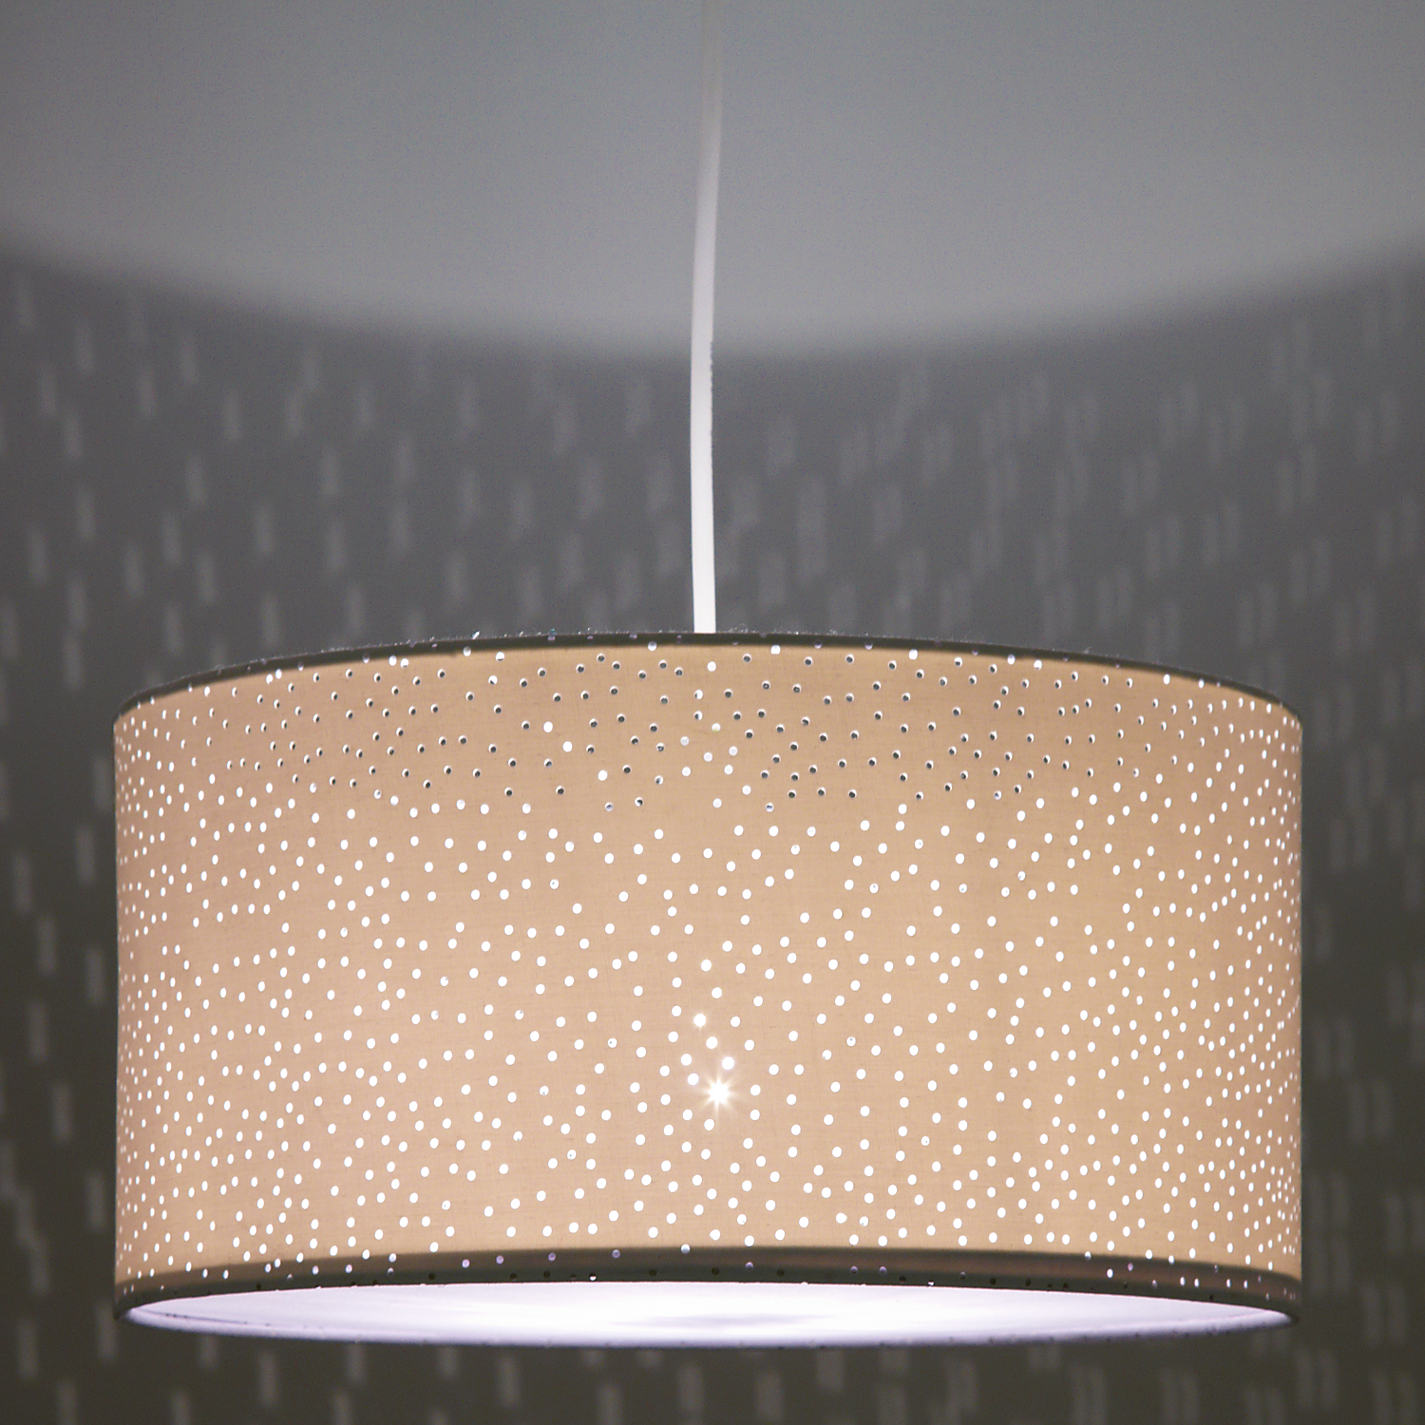 Buy john lewis easy to fit alice starry sky ceiling shade john lewis buy john lewis easy to fit alice starry sky ceiling shade online at johnlewis aloadofball Gallery